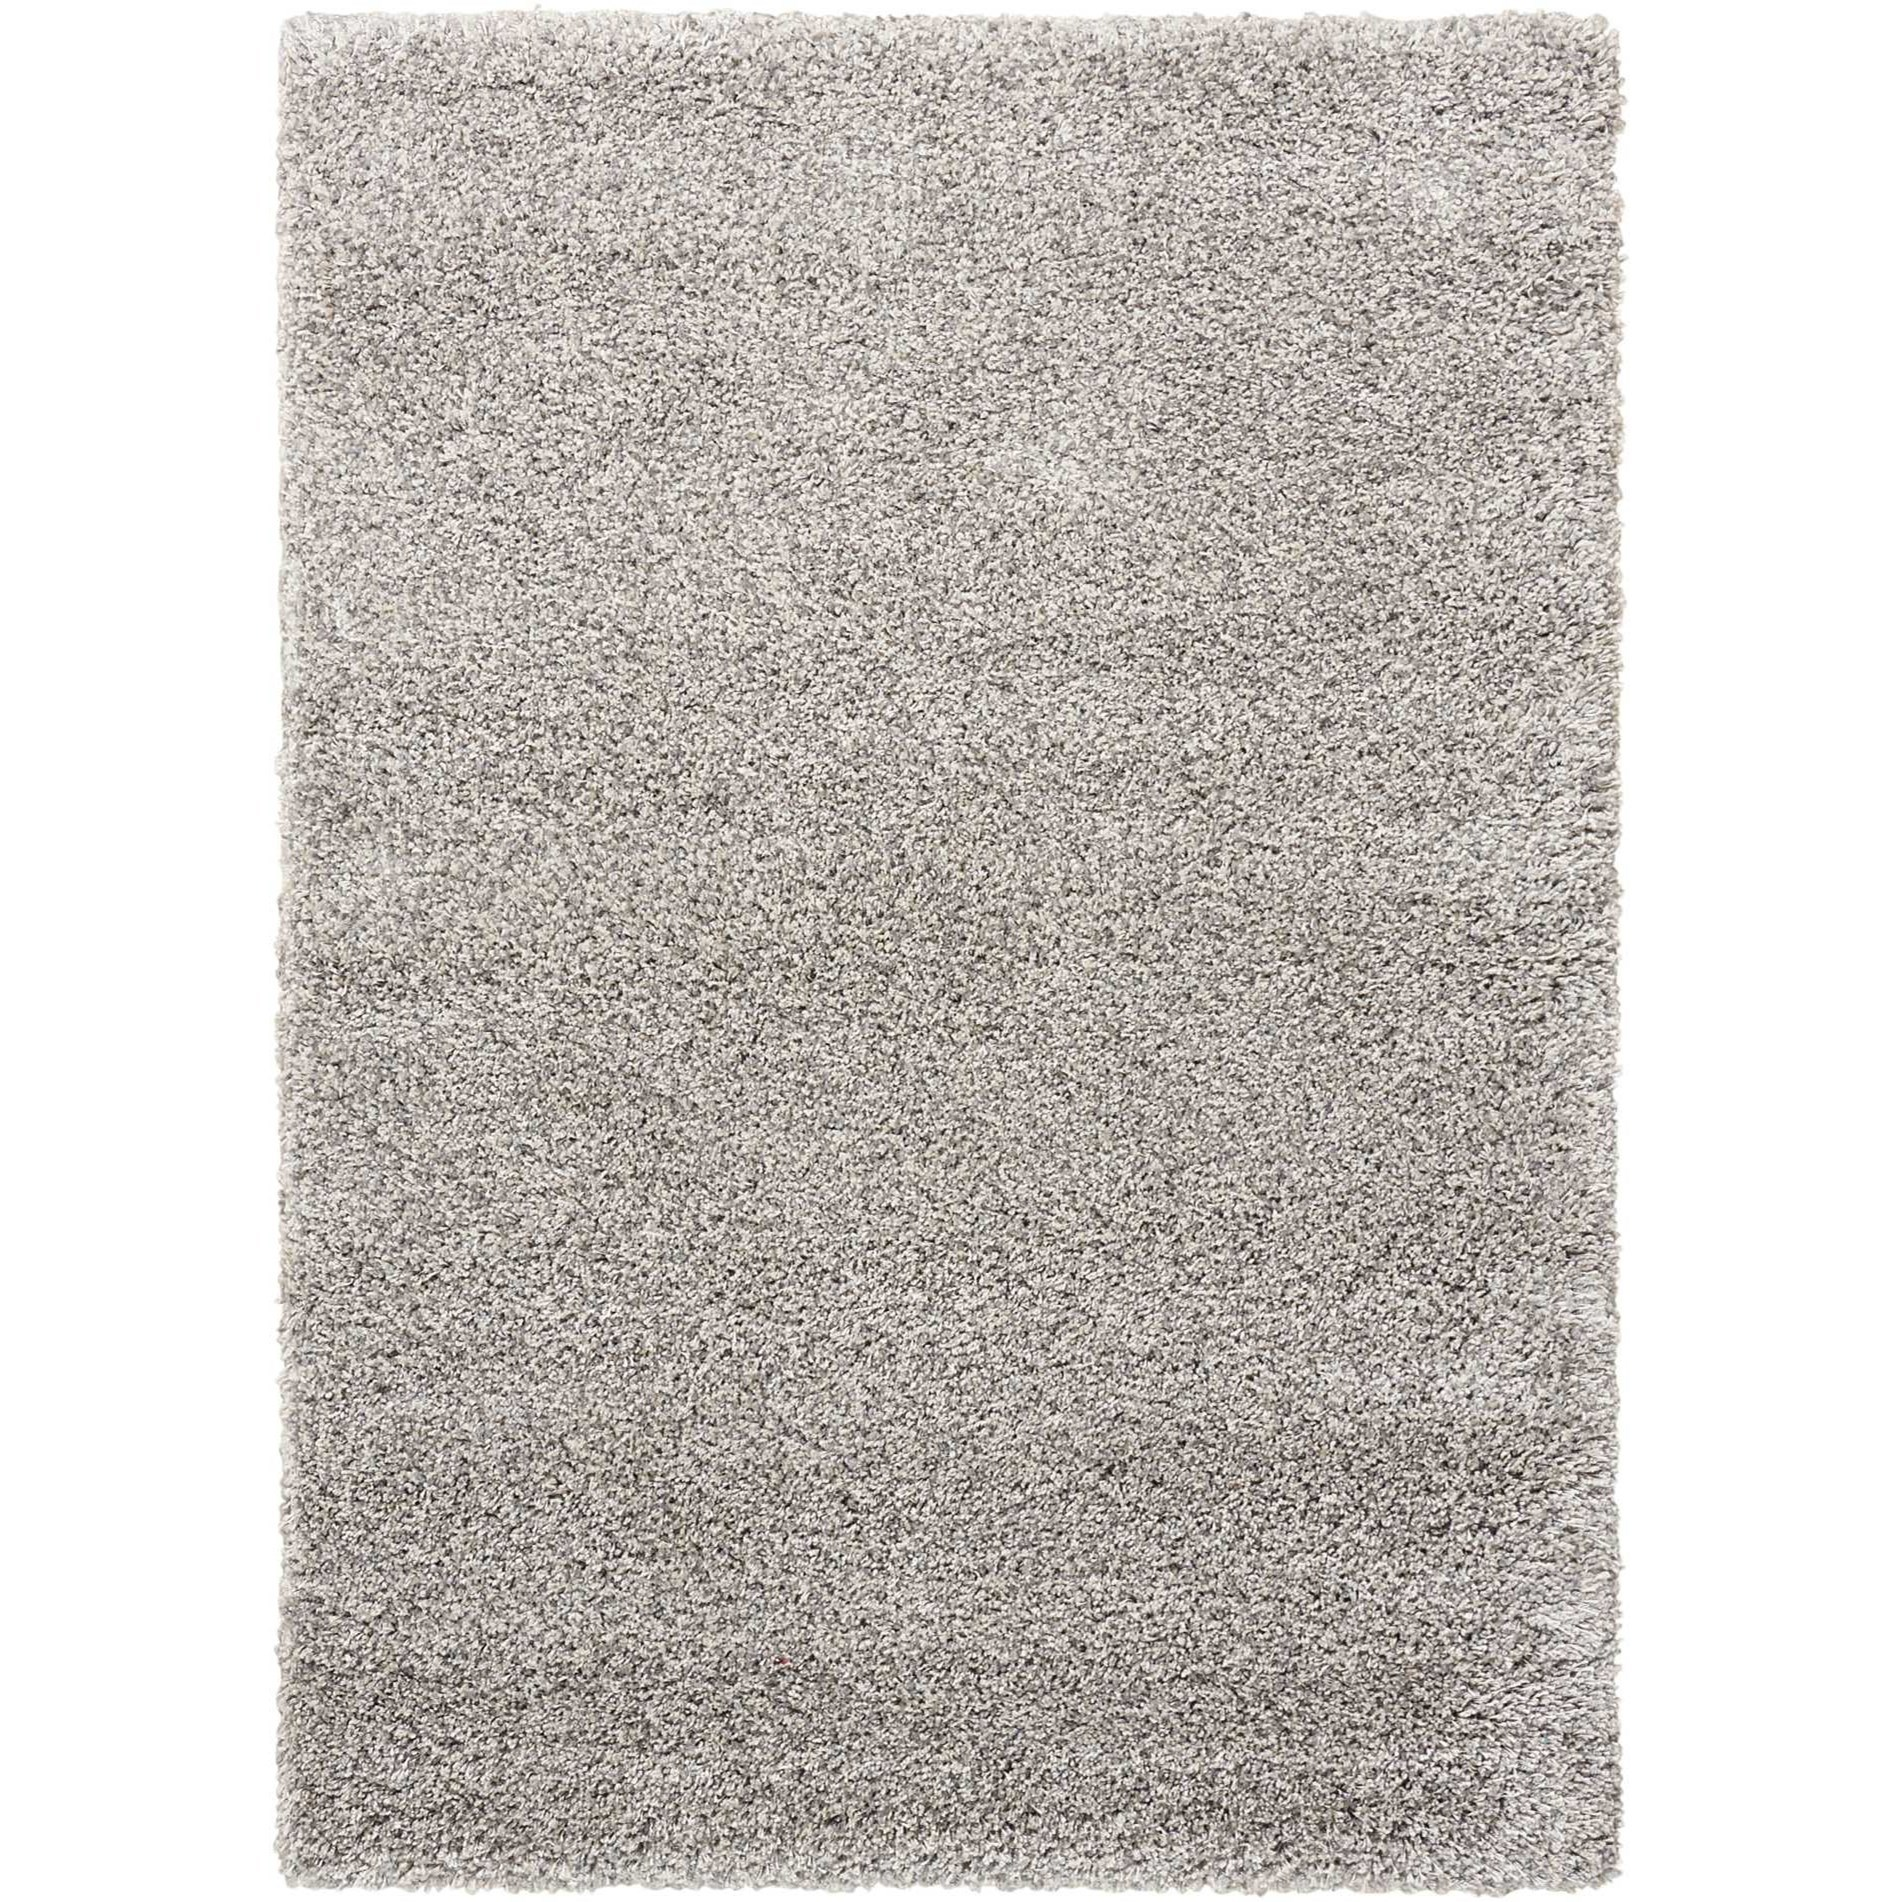 "Amore 5'3"" x 7'5"" Lt Grey Rectangle Rug by Nourison at Home Collections Furniture"